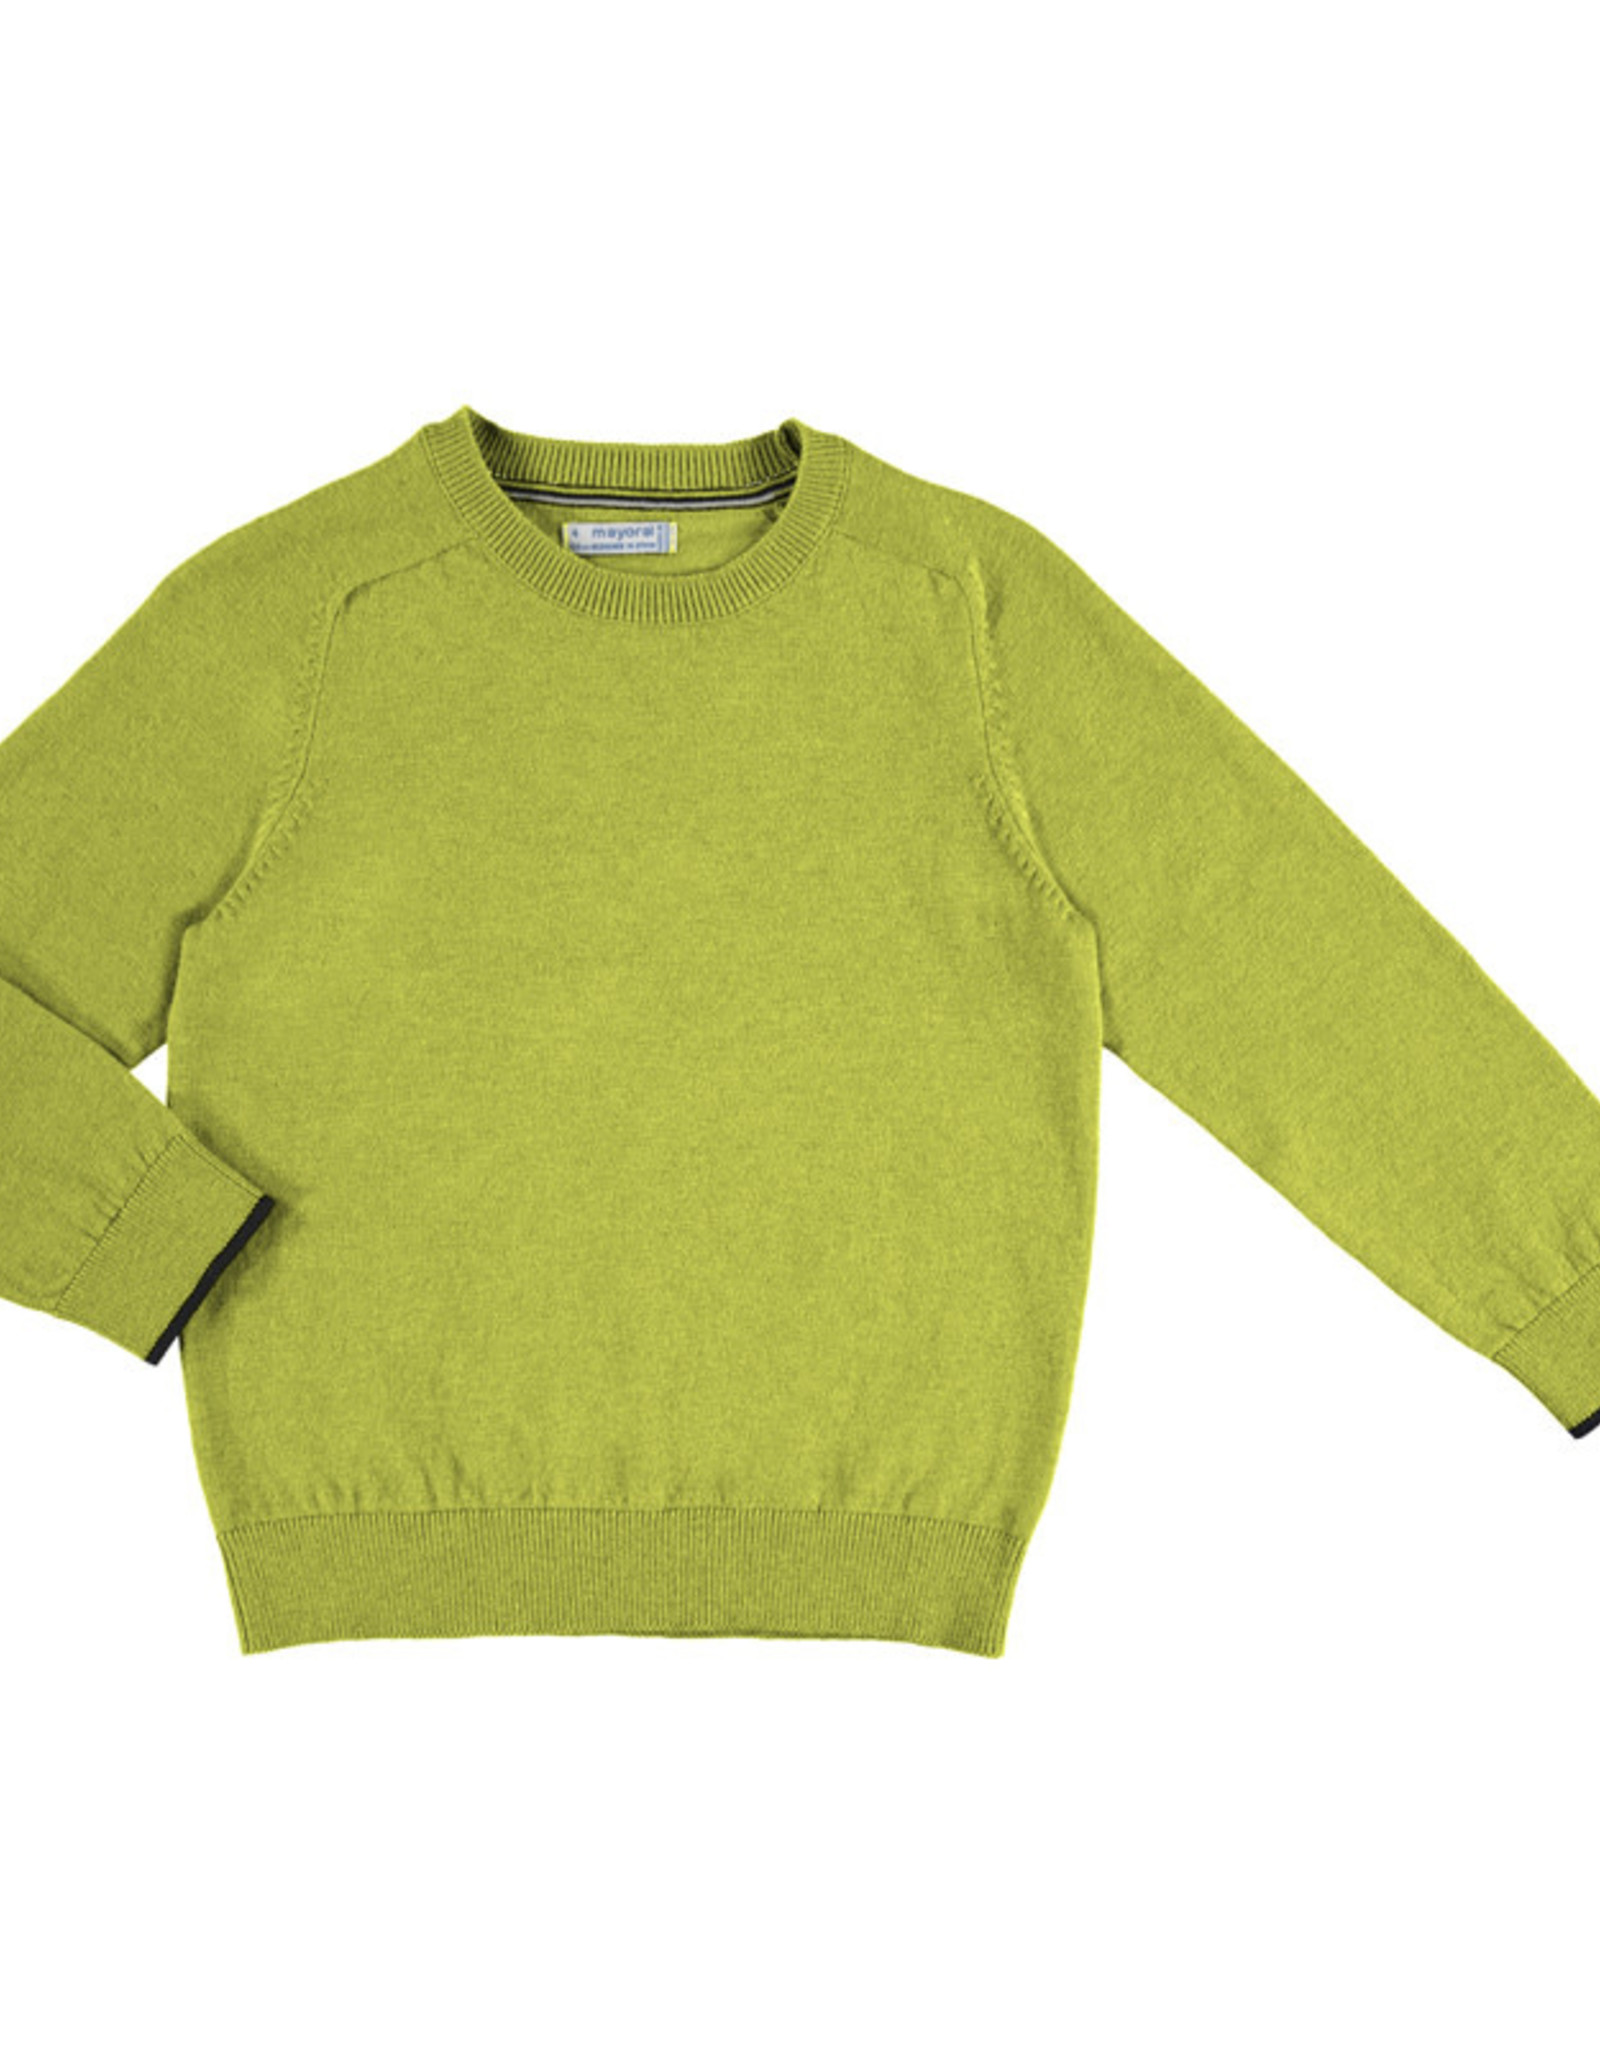 Mayoral Lime & Cheddar  Crew neck cotton sweater